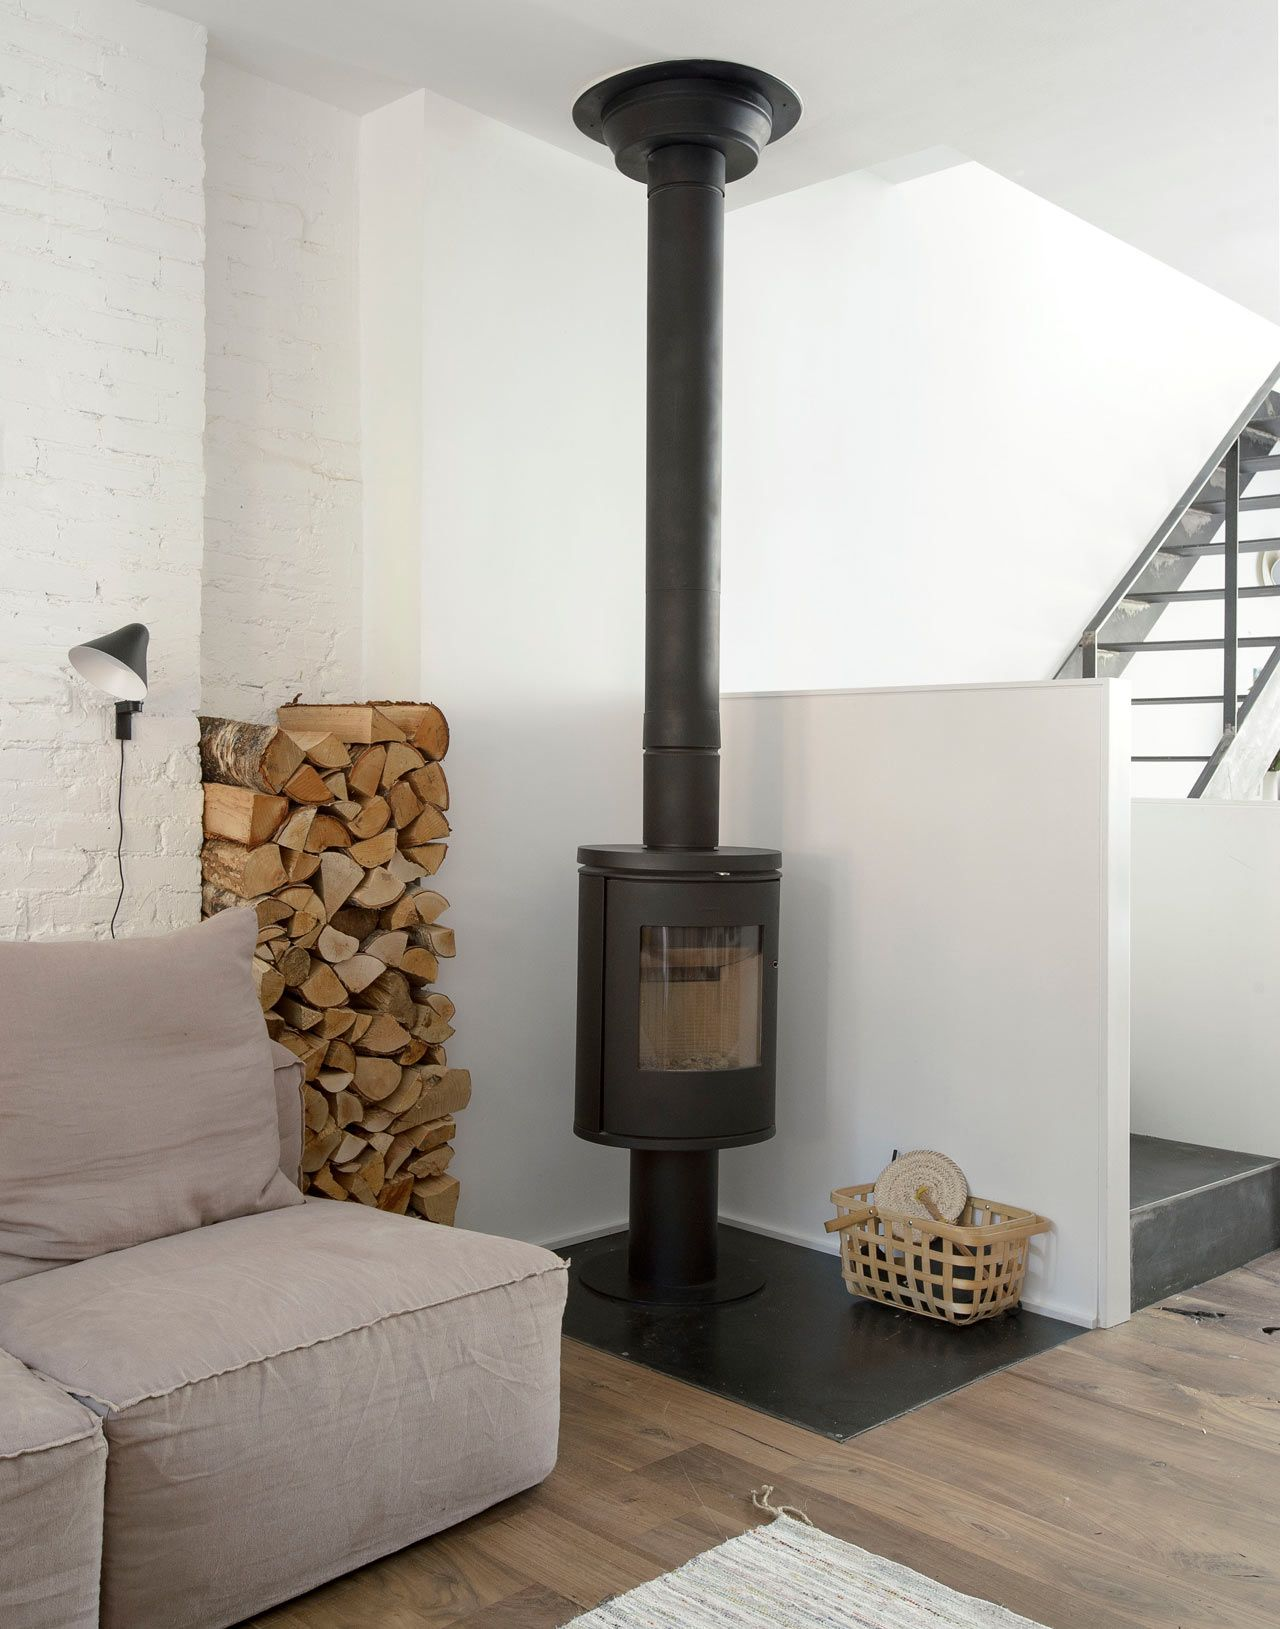 Oany Rowhouse 12  Design Milk